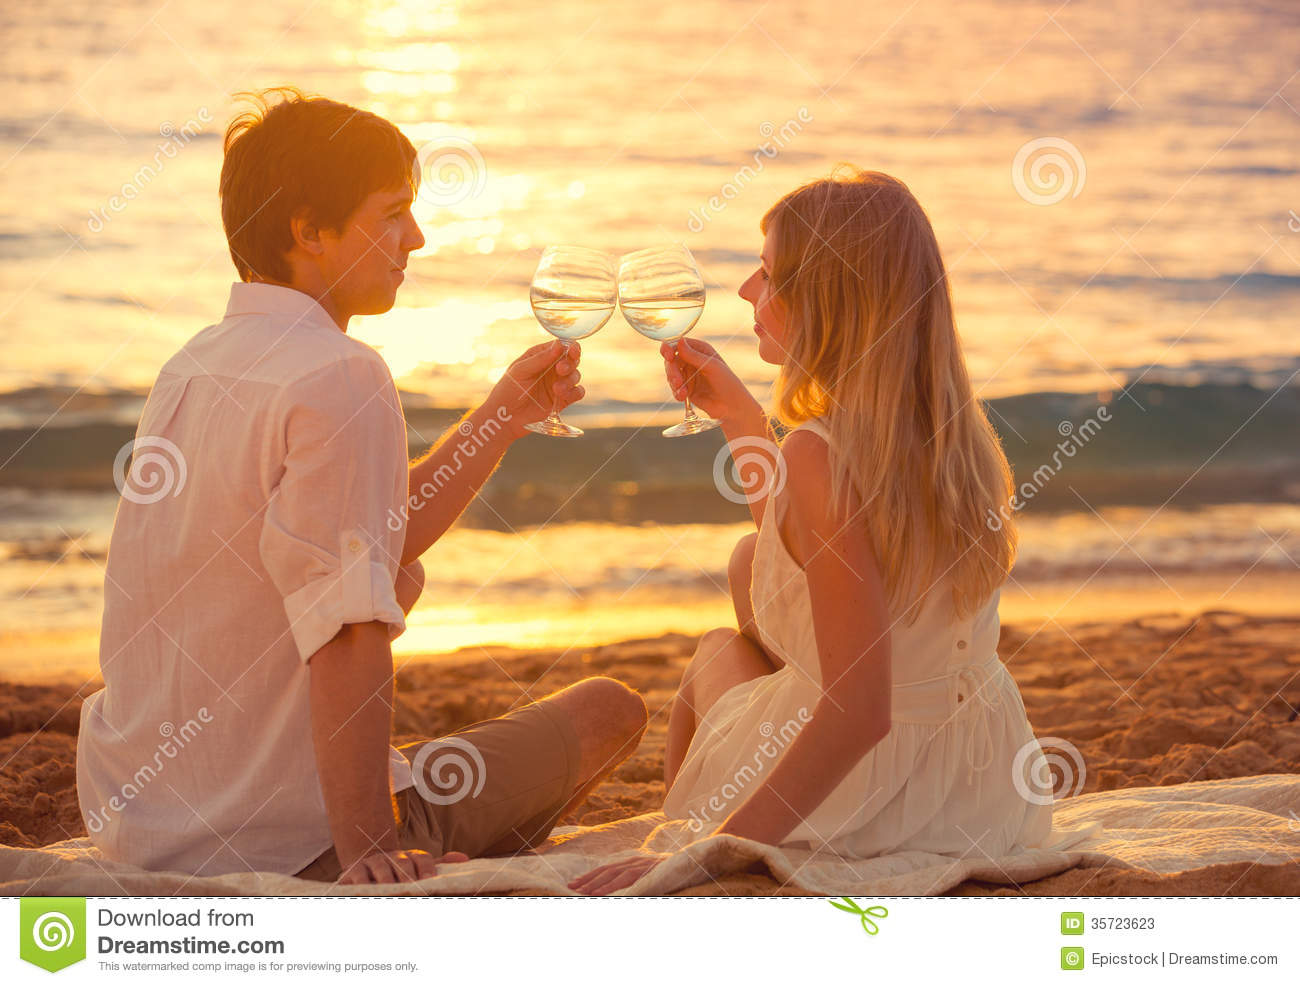 Love Wallpaper Man Woman : Honeymoon concept, Man And Woman In Love Stock Photos ...